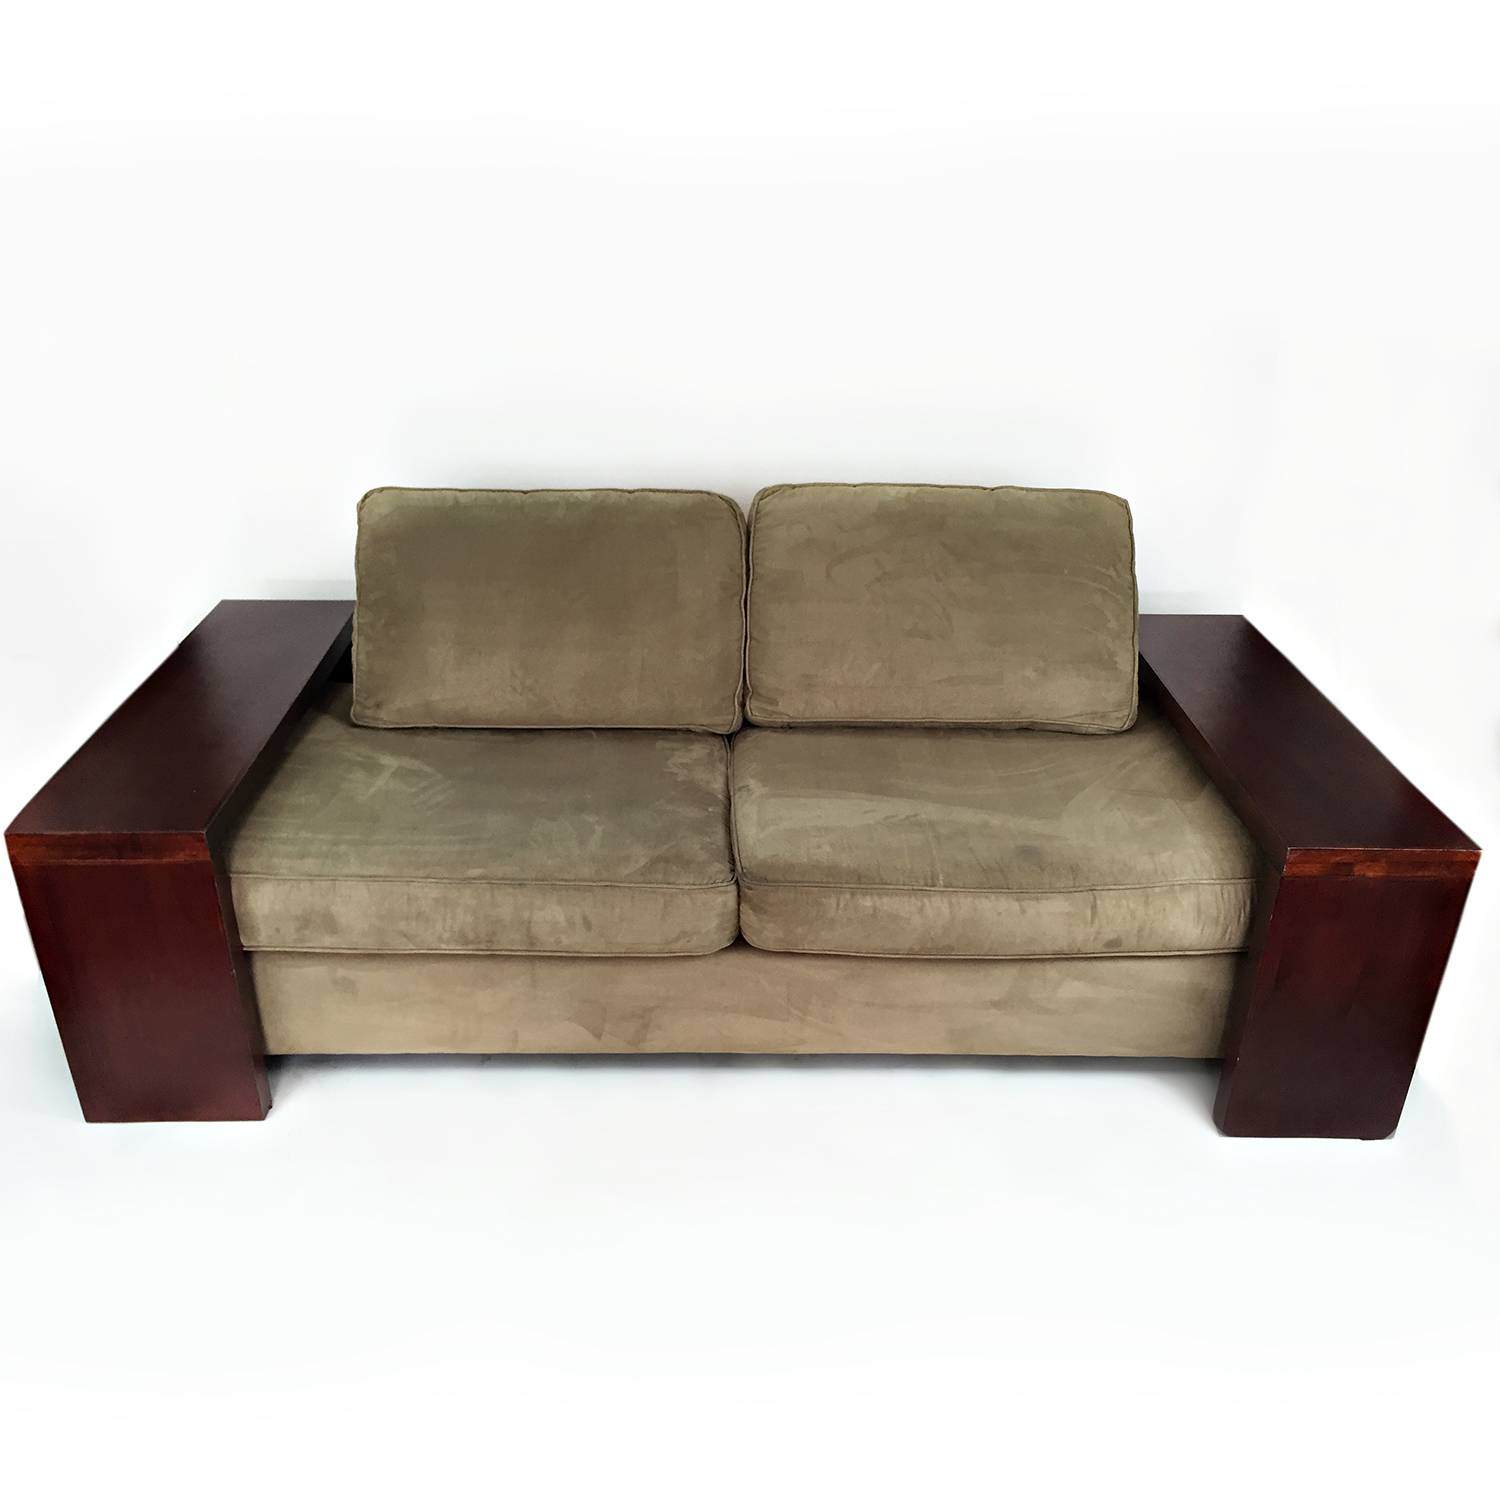 Max Home Max Home Sofa with End Table Set on sale